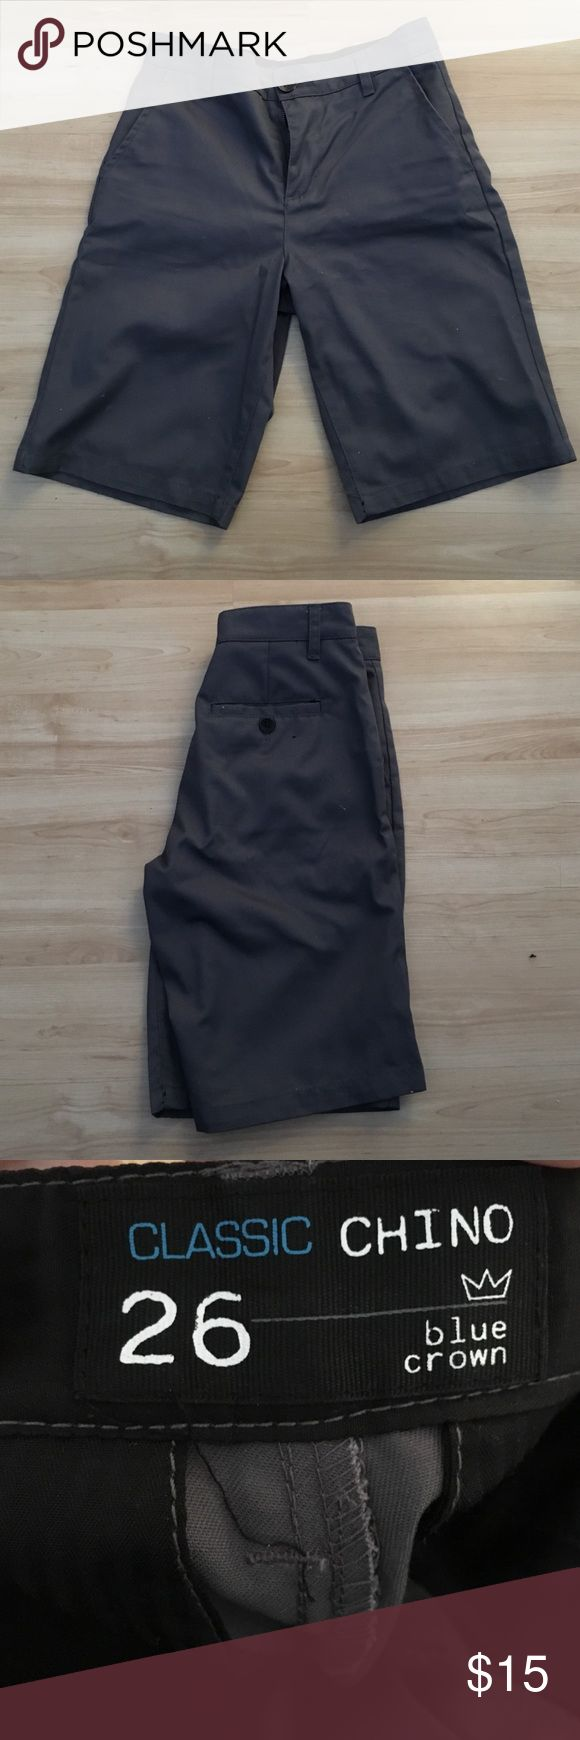 Urban outfitters men's shorts size 26 Urban outfitters men's shorts size 26 Urban Outfitters Shorts Flat Front